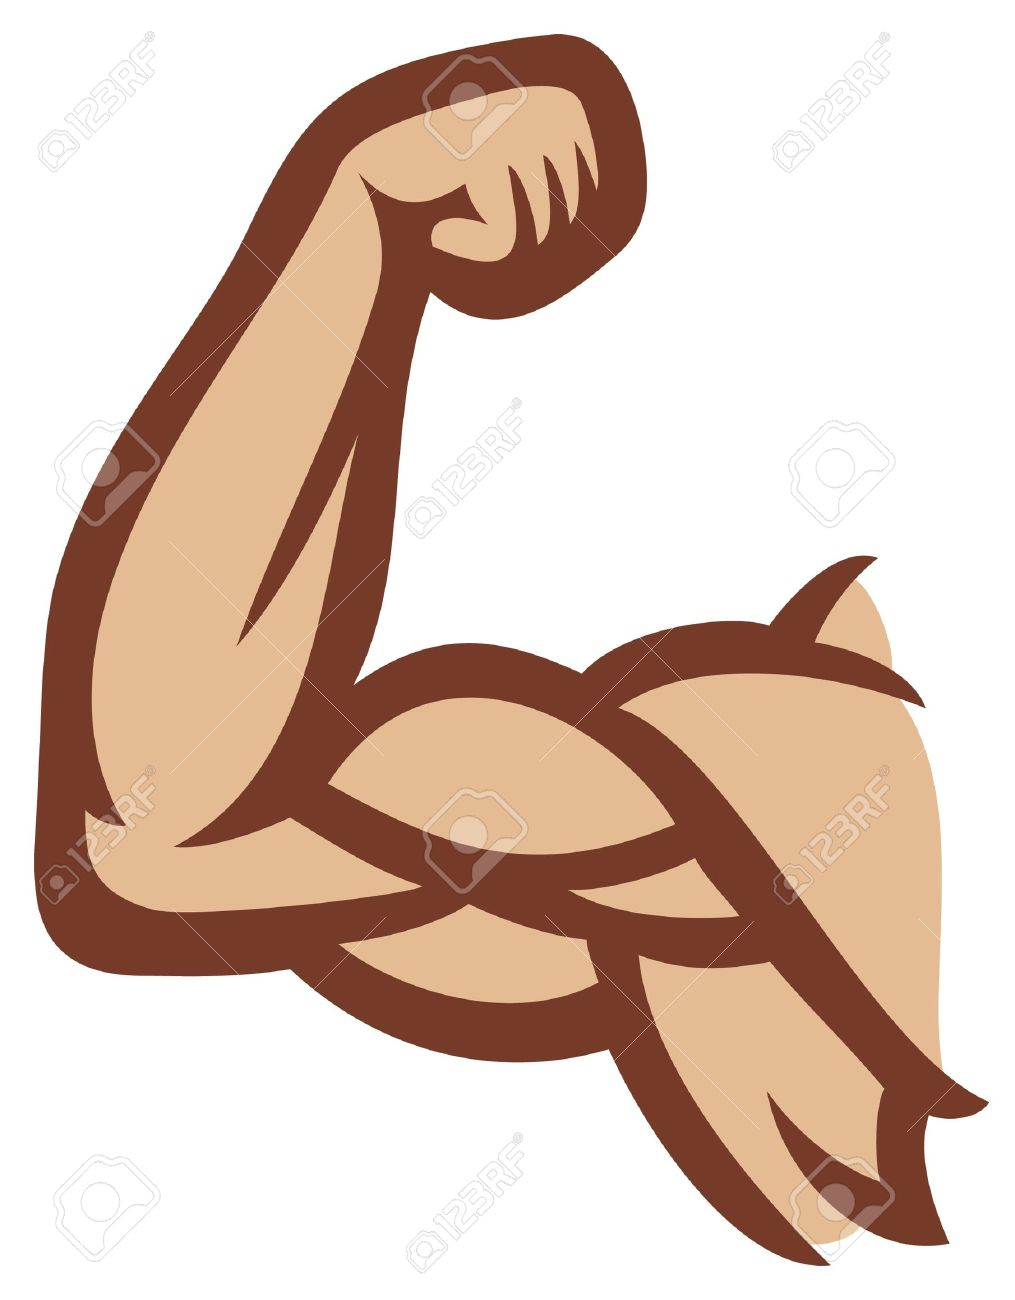 biceps  man s arm muscles, arm showing muscles and power Stock Vector - 15956098